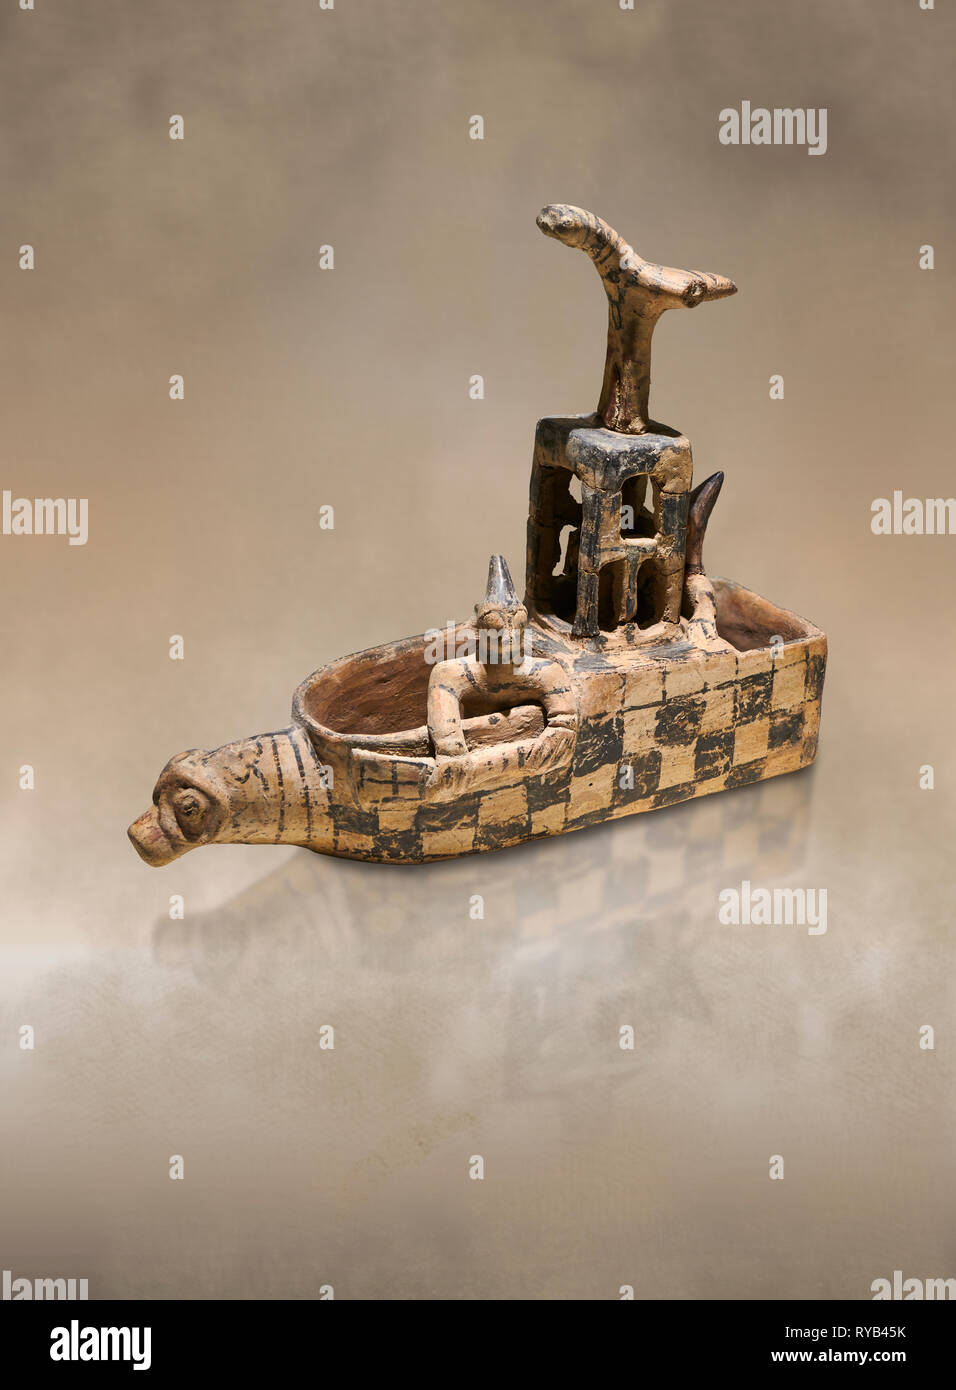 Assyrian Trader Colony Bronze Age terracotta sandal shaped ritual vessed. This cult pot is boat shaped with an animal head at the front. Inside the ve - Stock Image